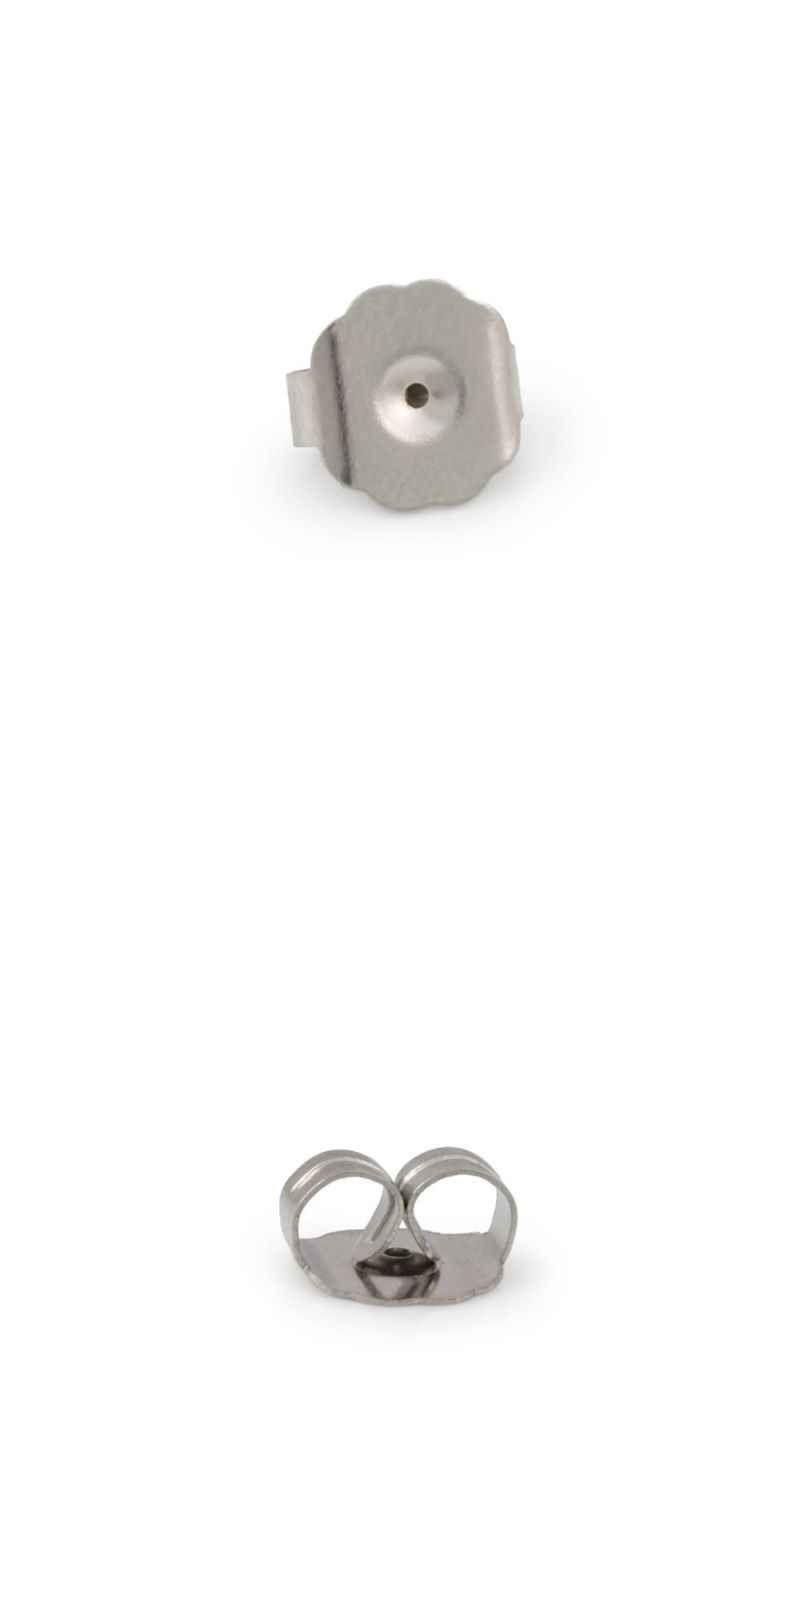 Earring Findings 150051 Extra Large Surgical Stainless Steel Backs Package Of 10